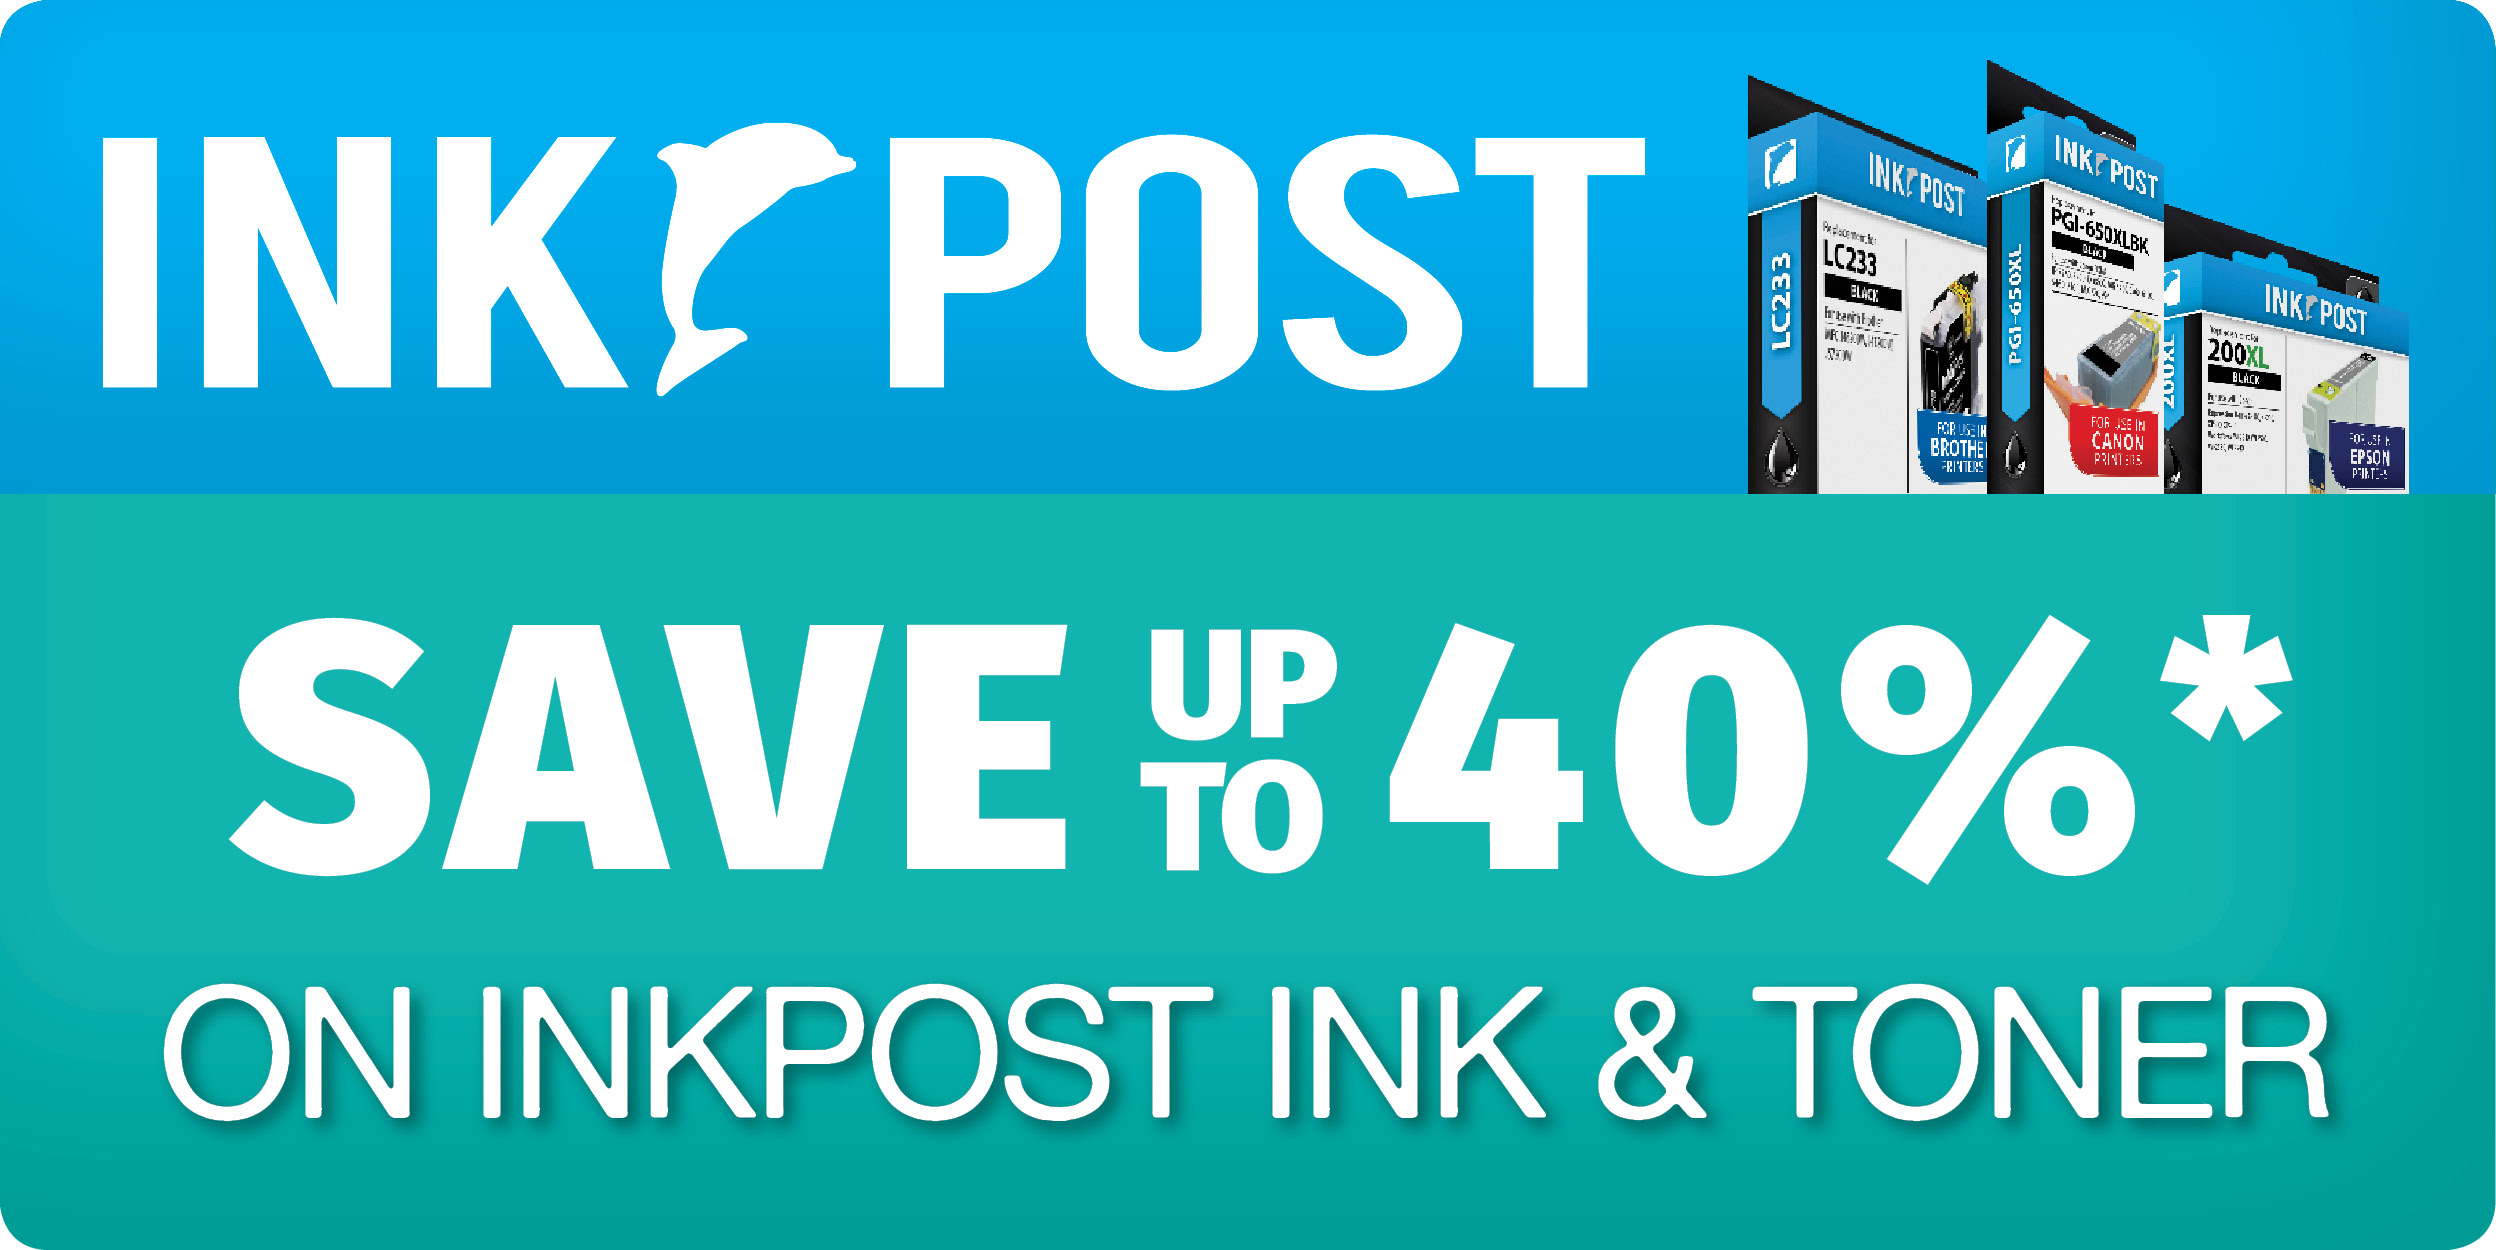 40 off inkpost